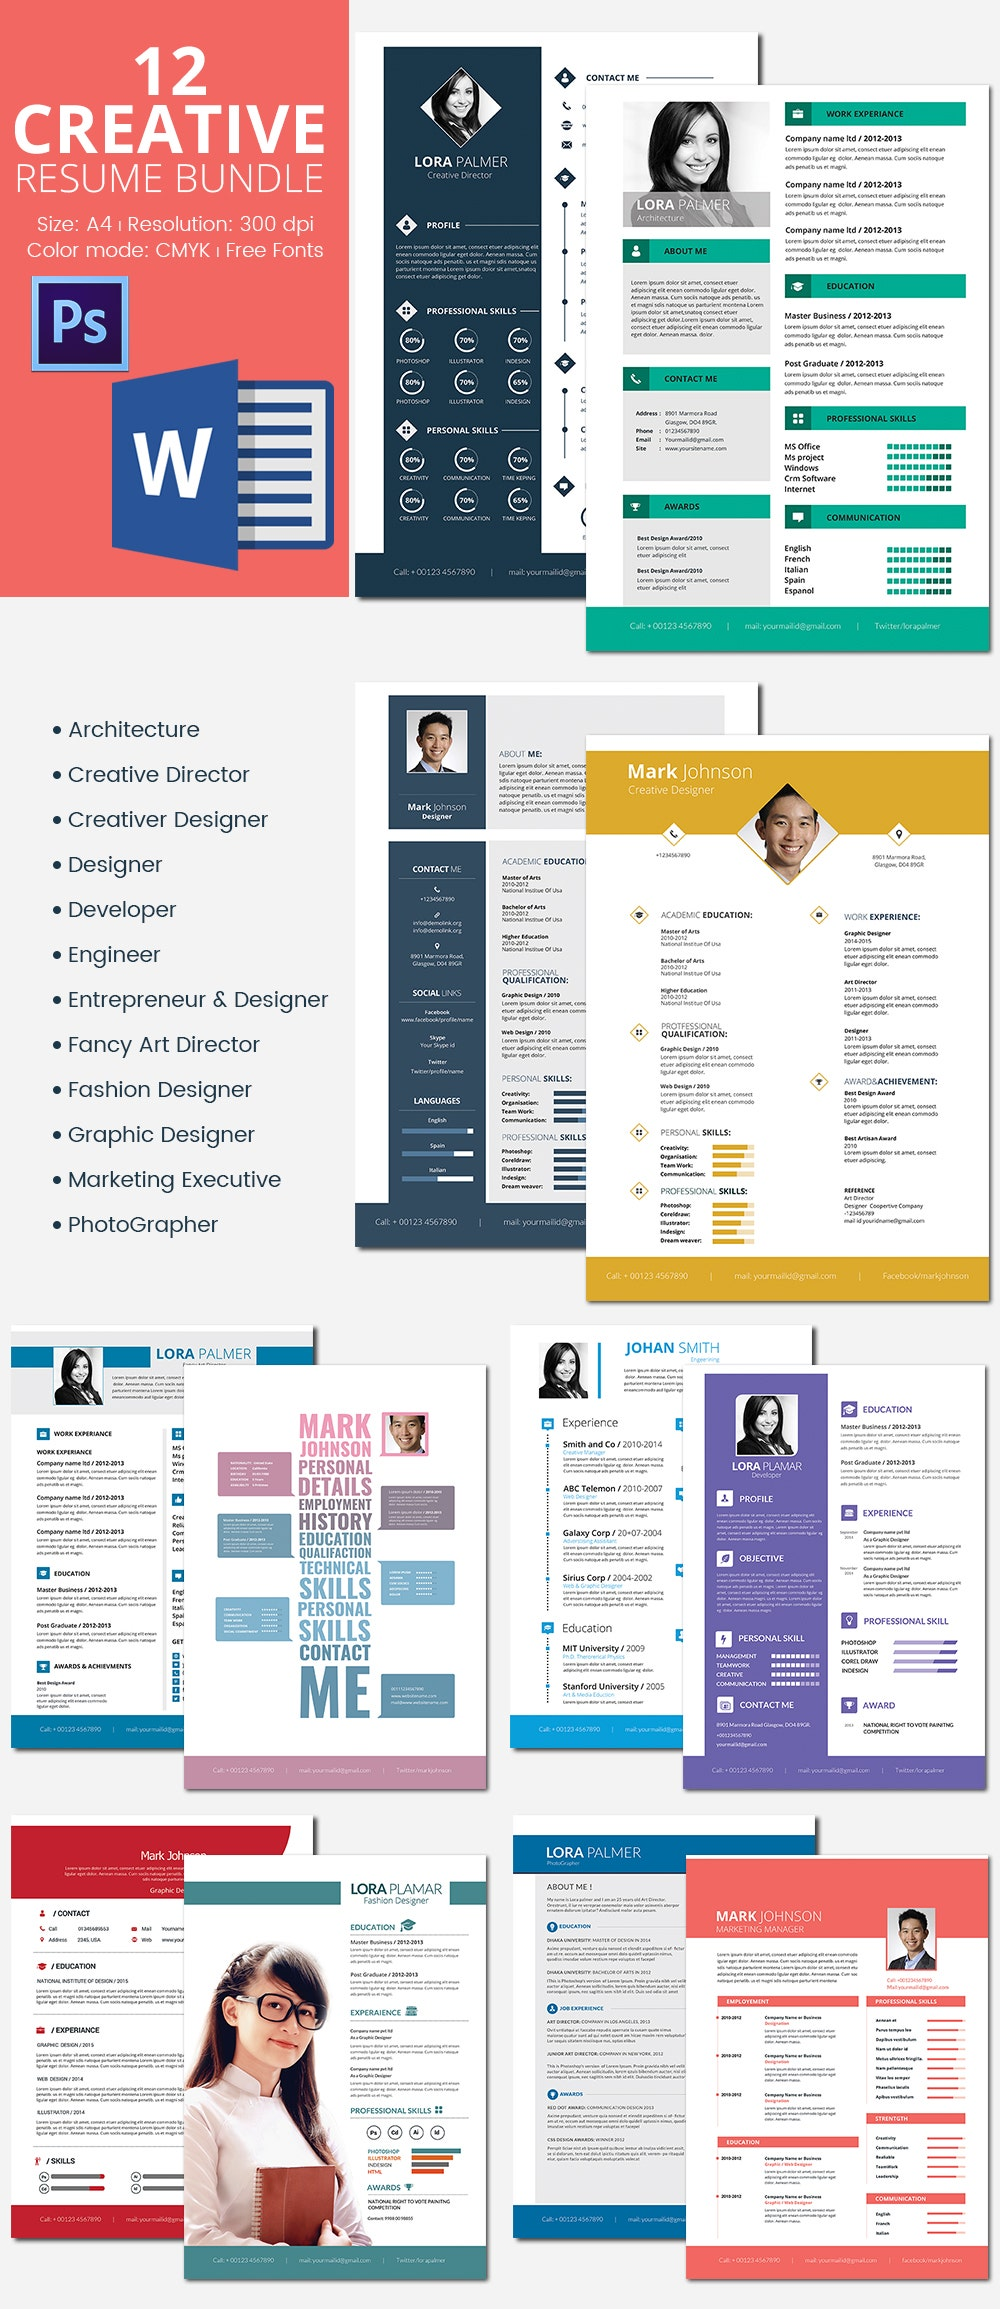 12 resume bundle templates